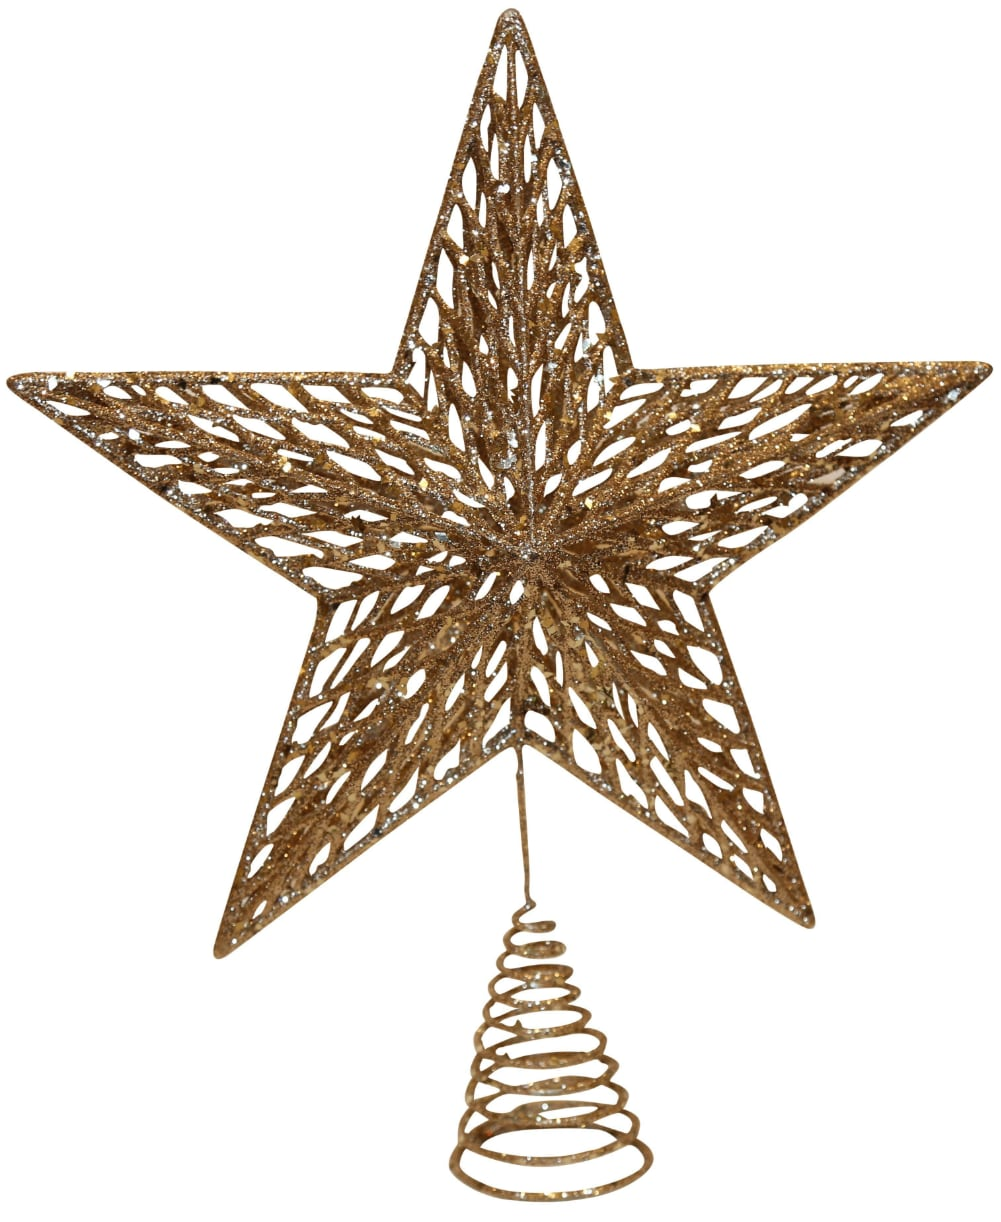 Christmas Tree Decoration Gold Glitter moulded tree top star